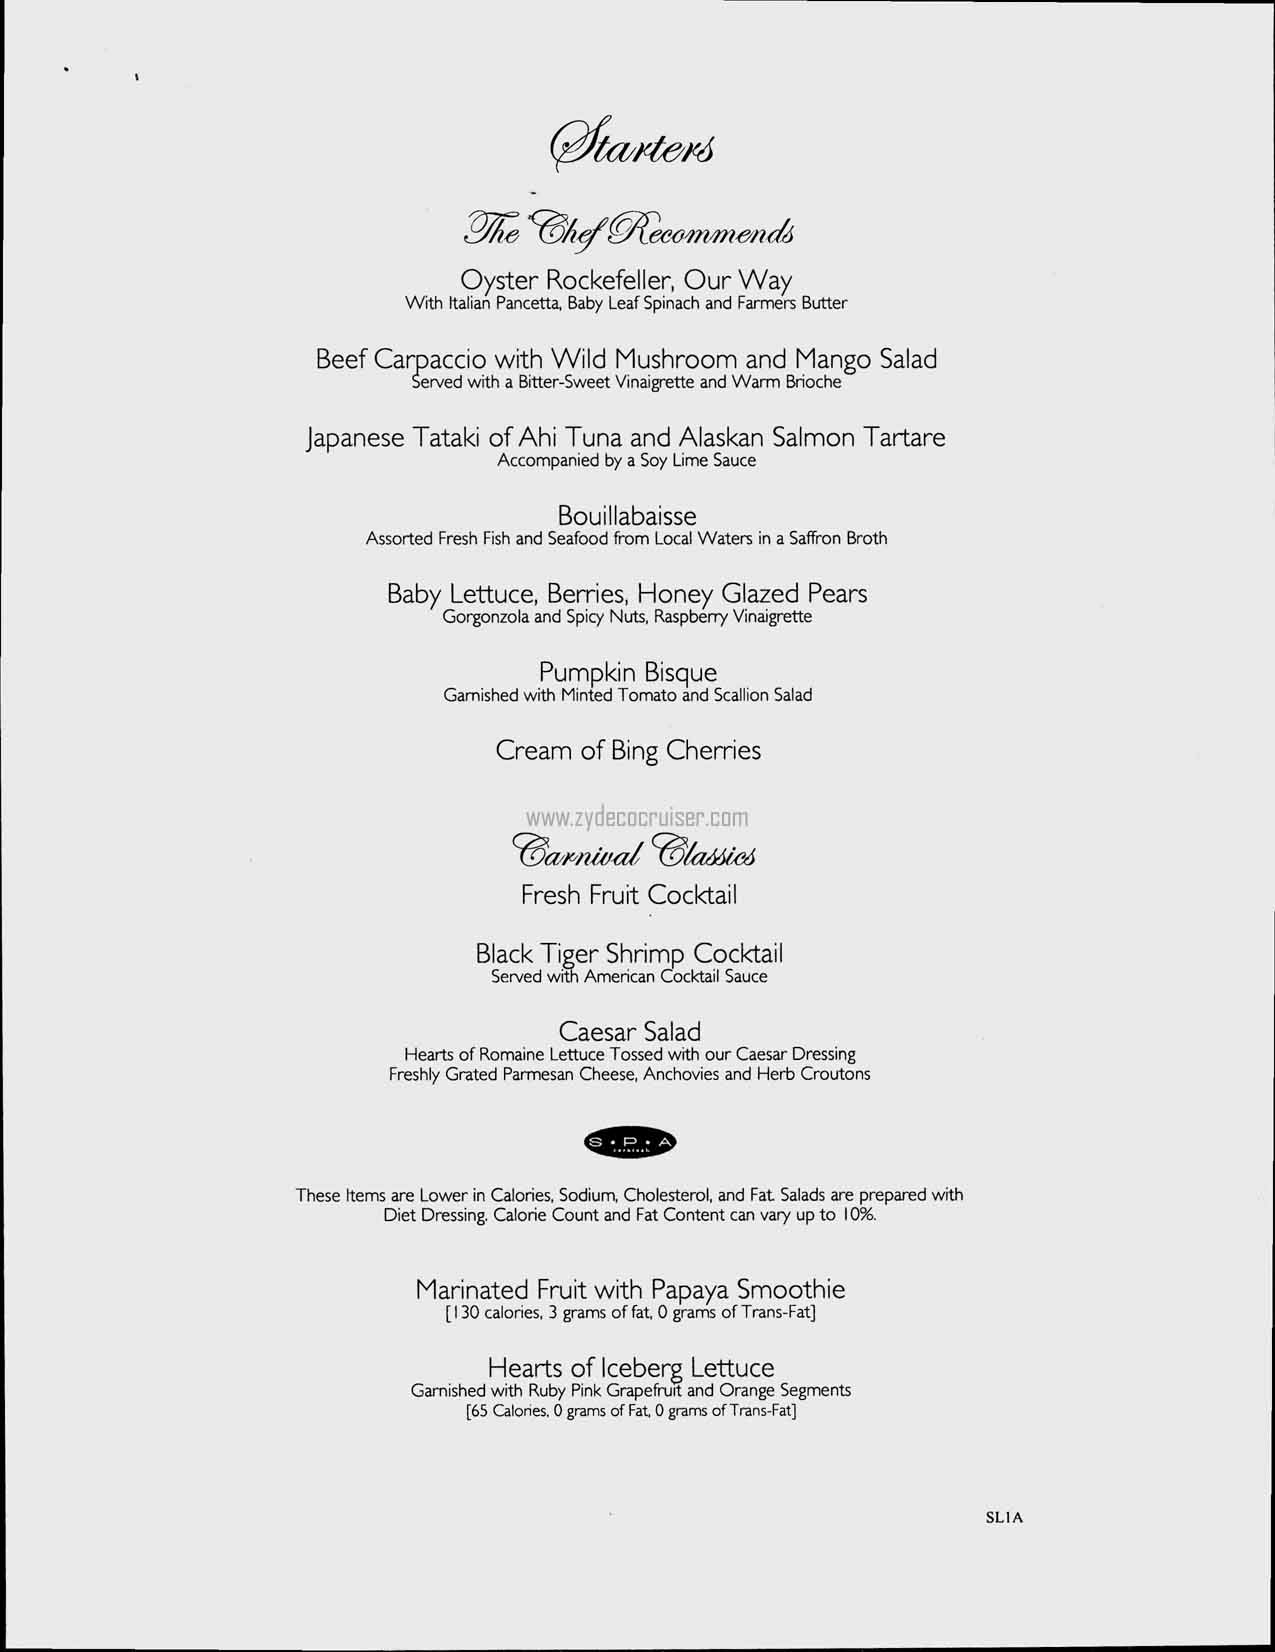 Carnival Splendor July 10 13, 2008, Dinner Menus  Formal Dinner Menu Template